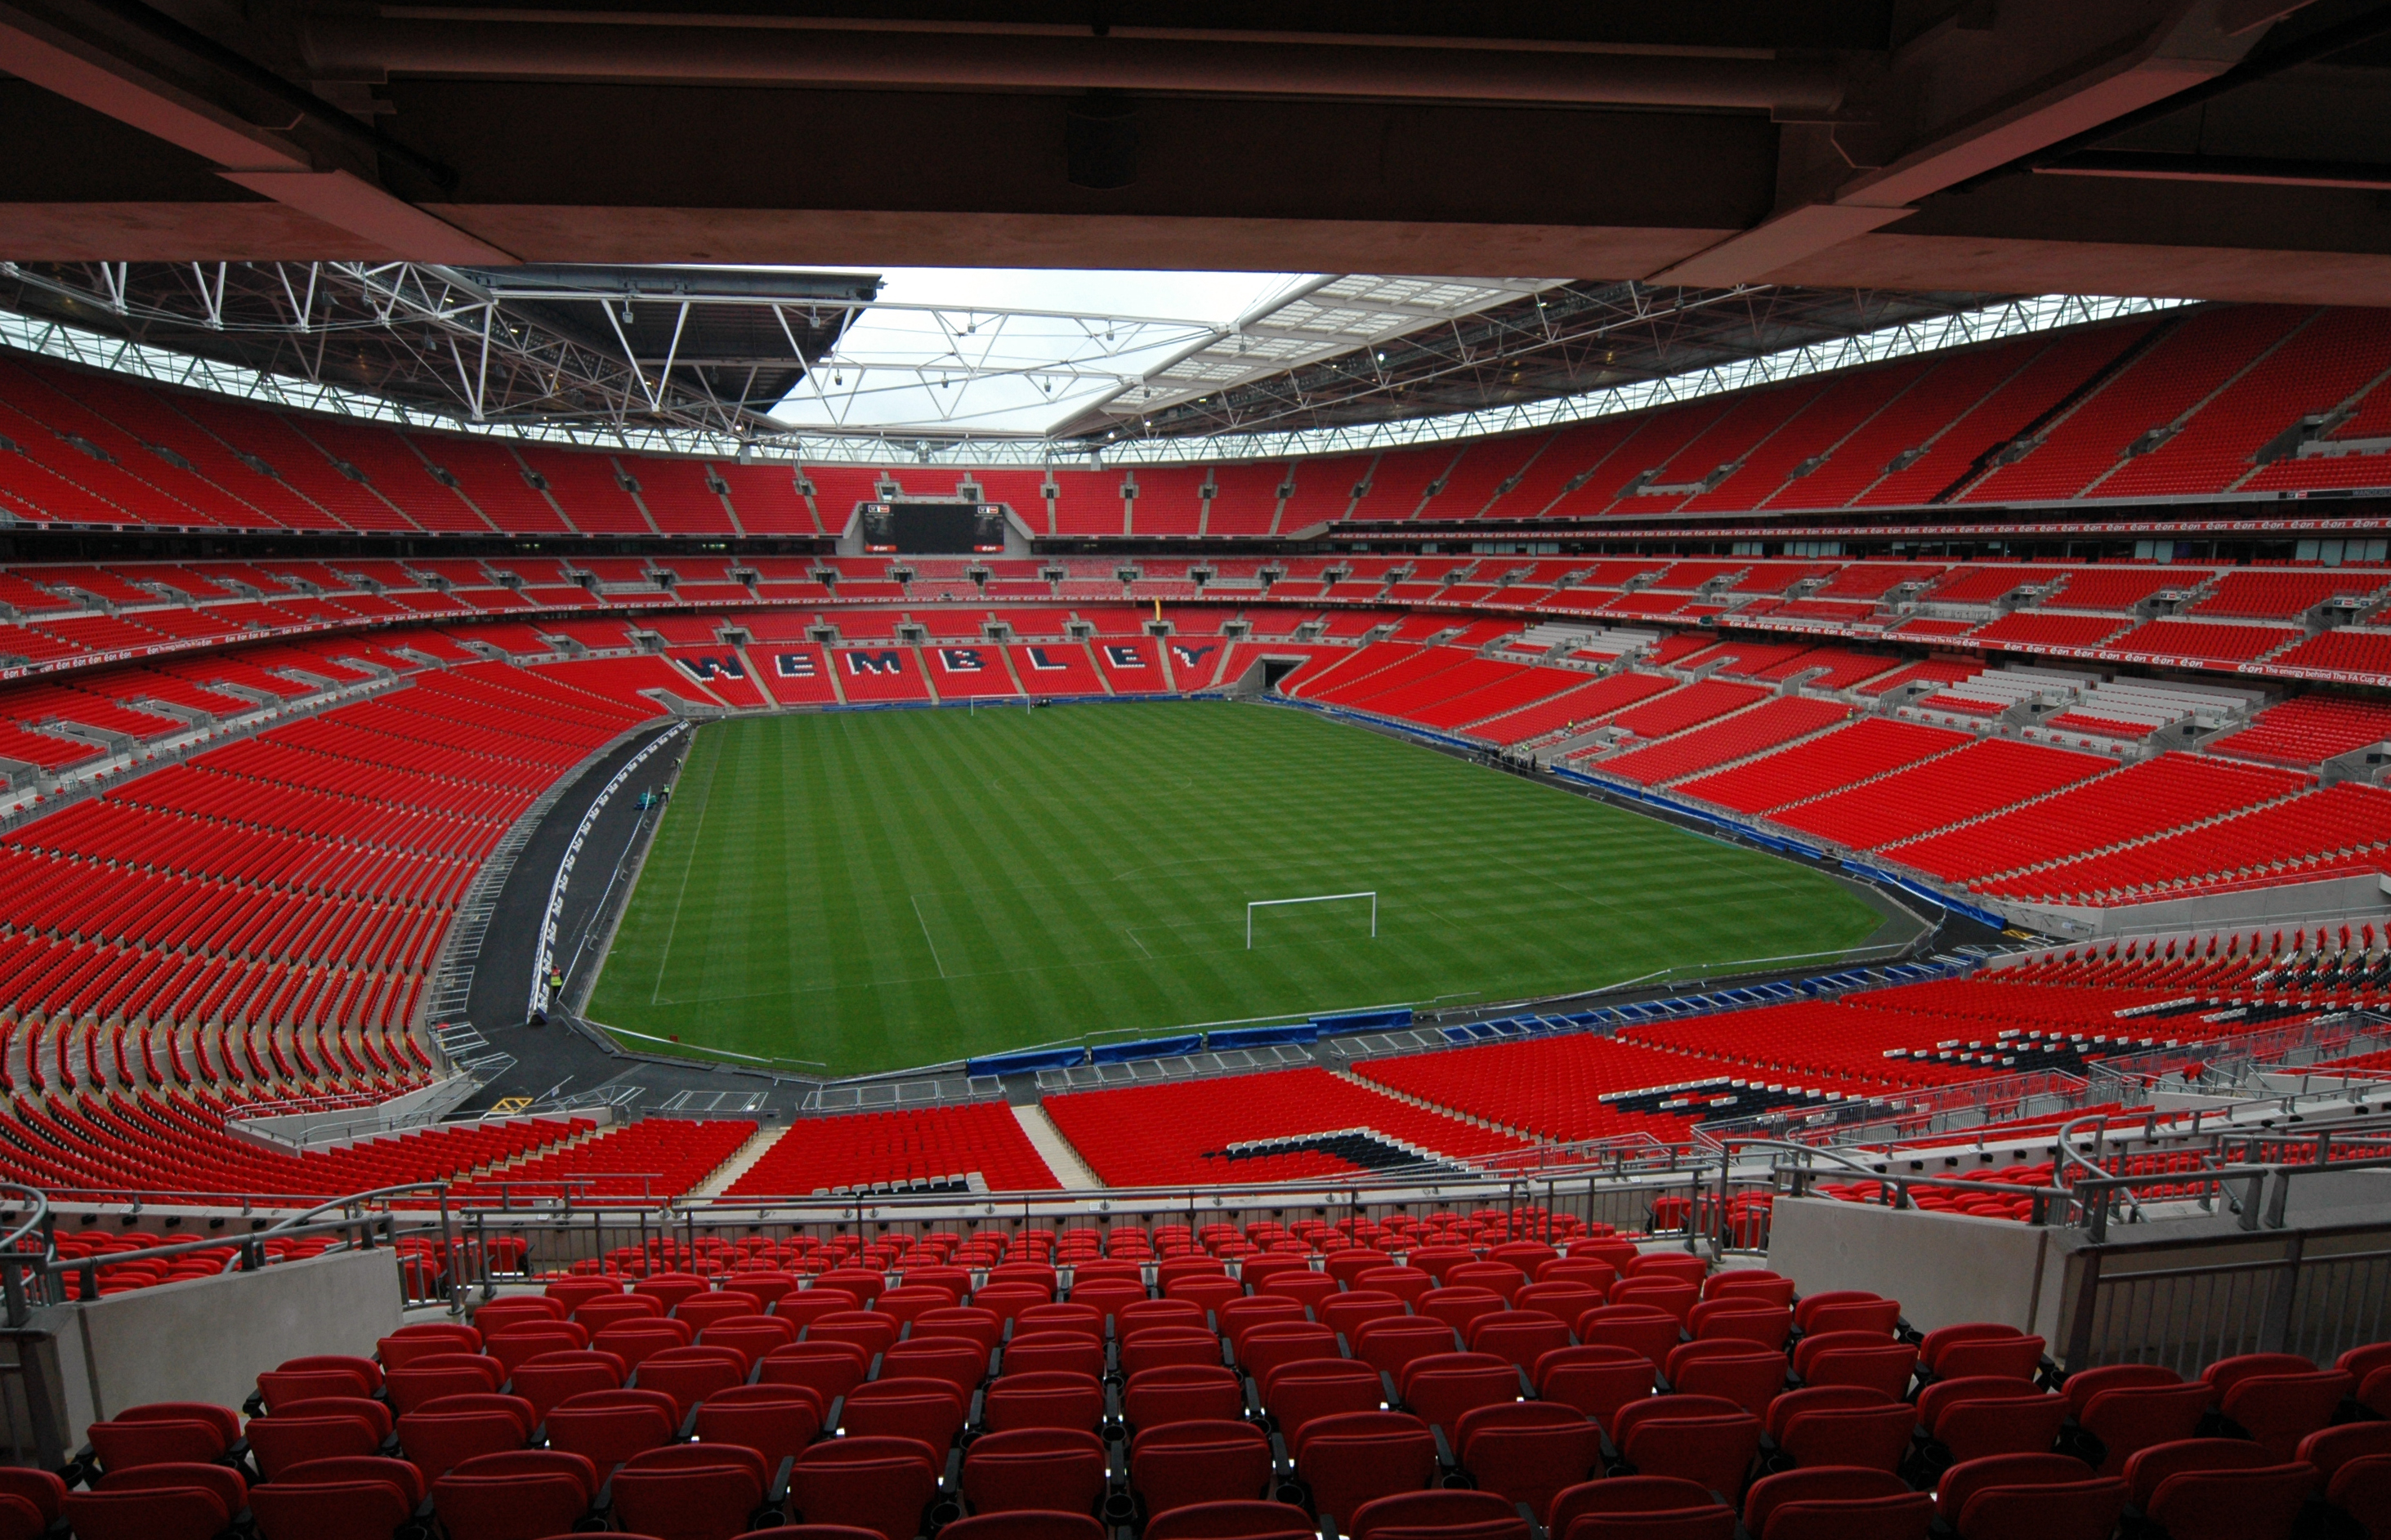 File:Wembley Stadium interior.jpg - Wikipedia, the free encyclopedia